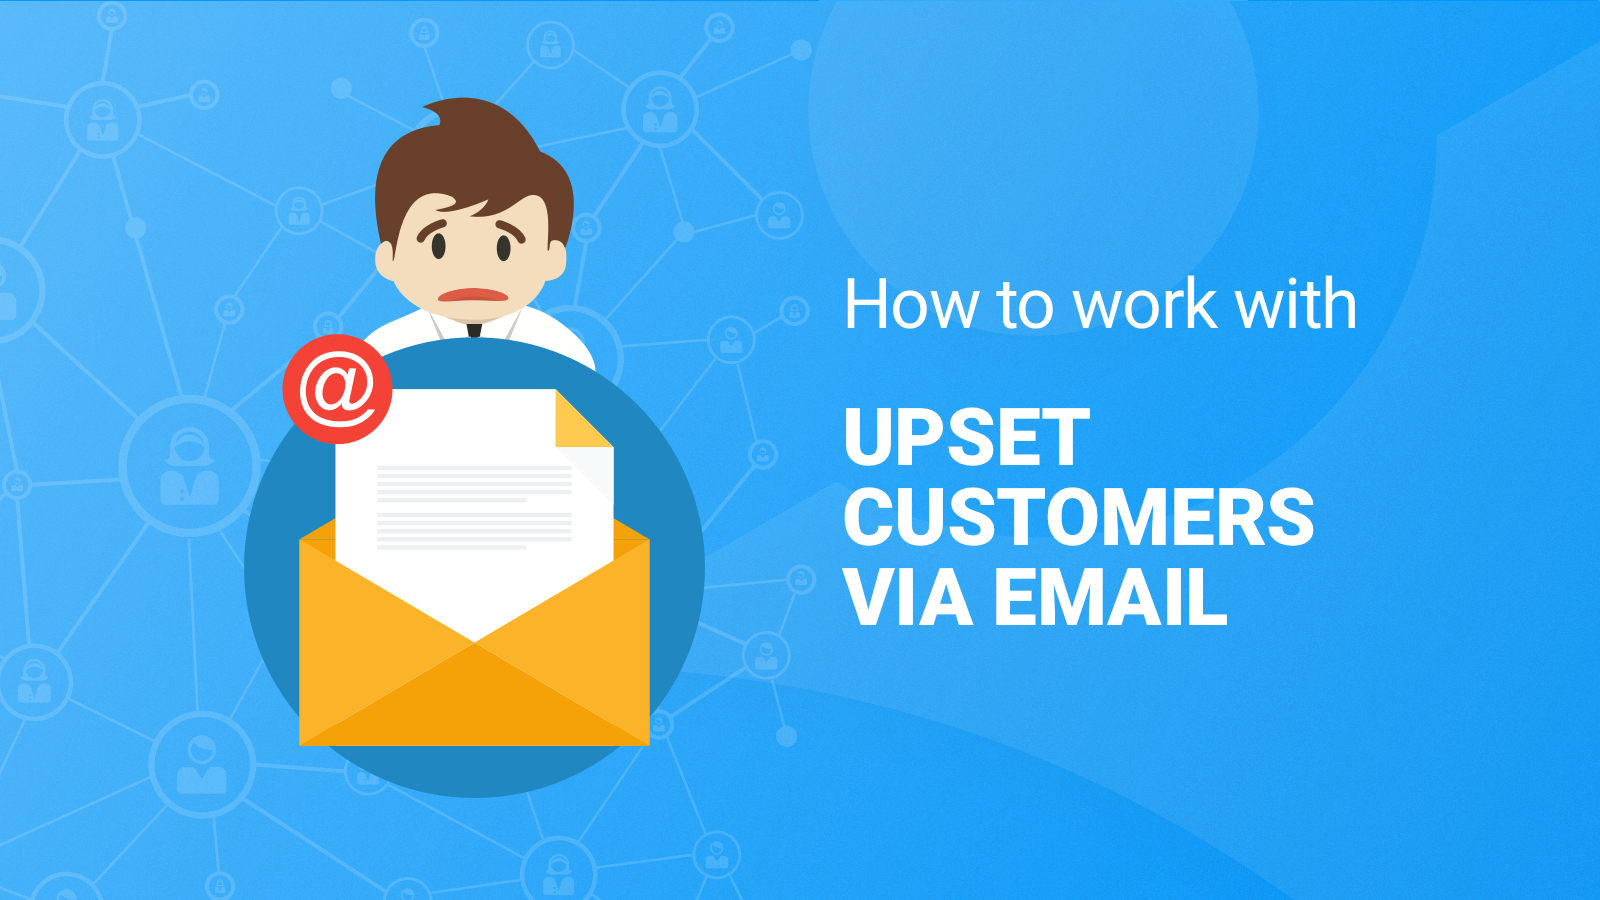 How to work with upset customers via email nethunt crm how to work with upset customers via email spiritdancerdesigns Image collections